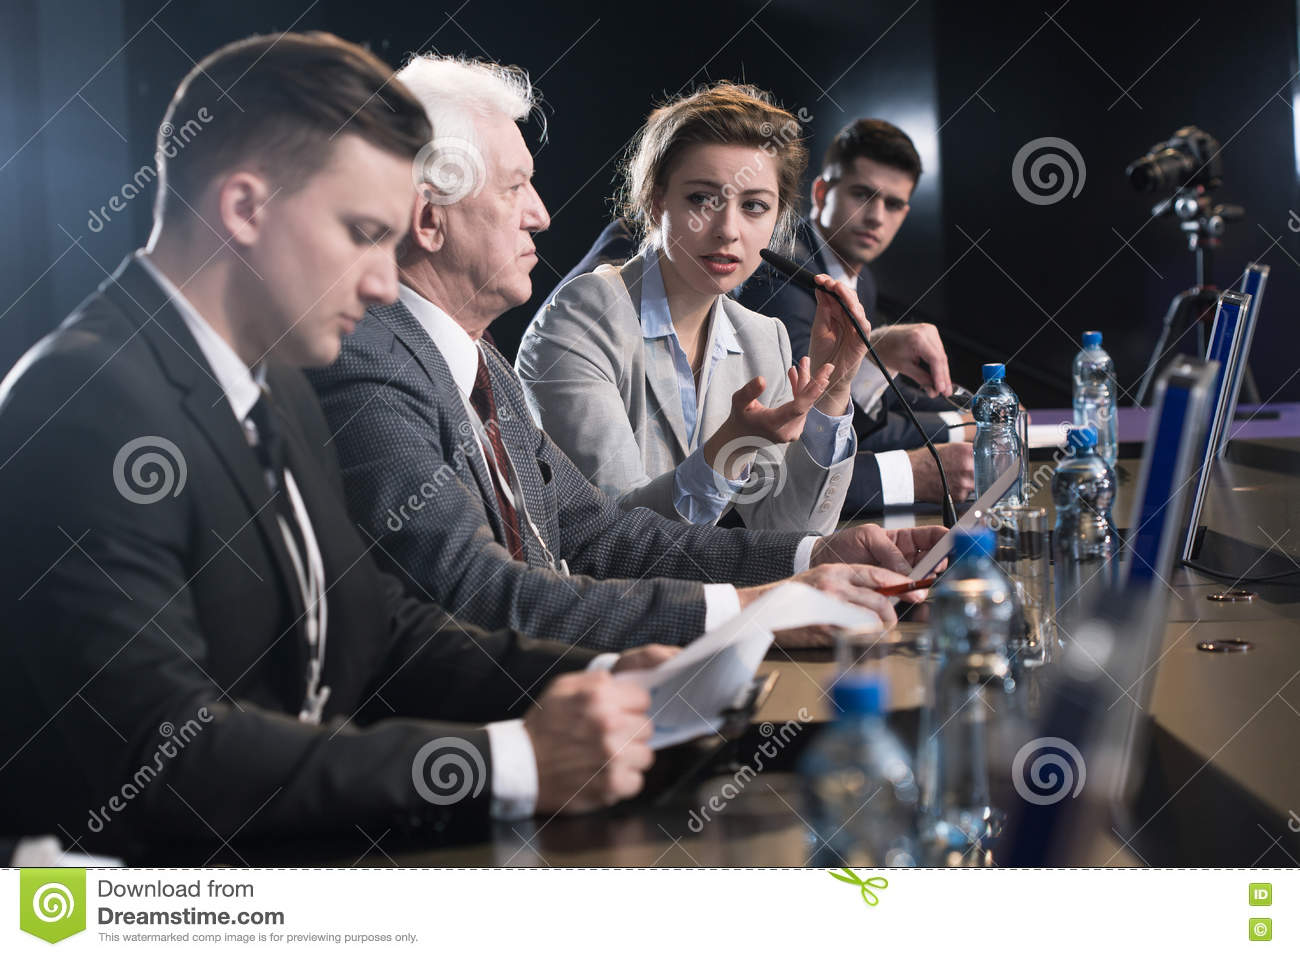 Scientist Education Debate Stock Photo Image Of Conference 71322390